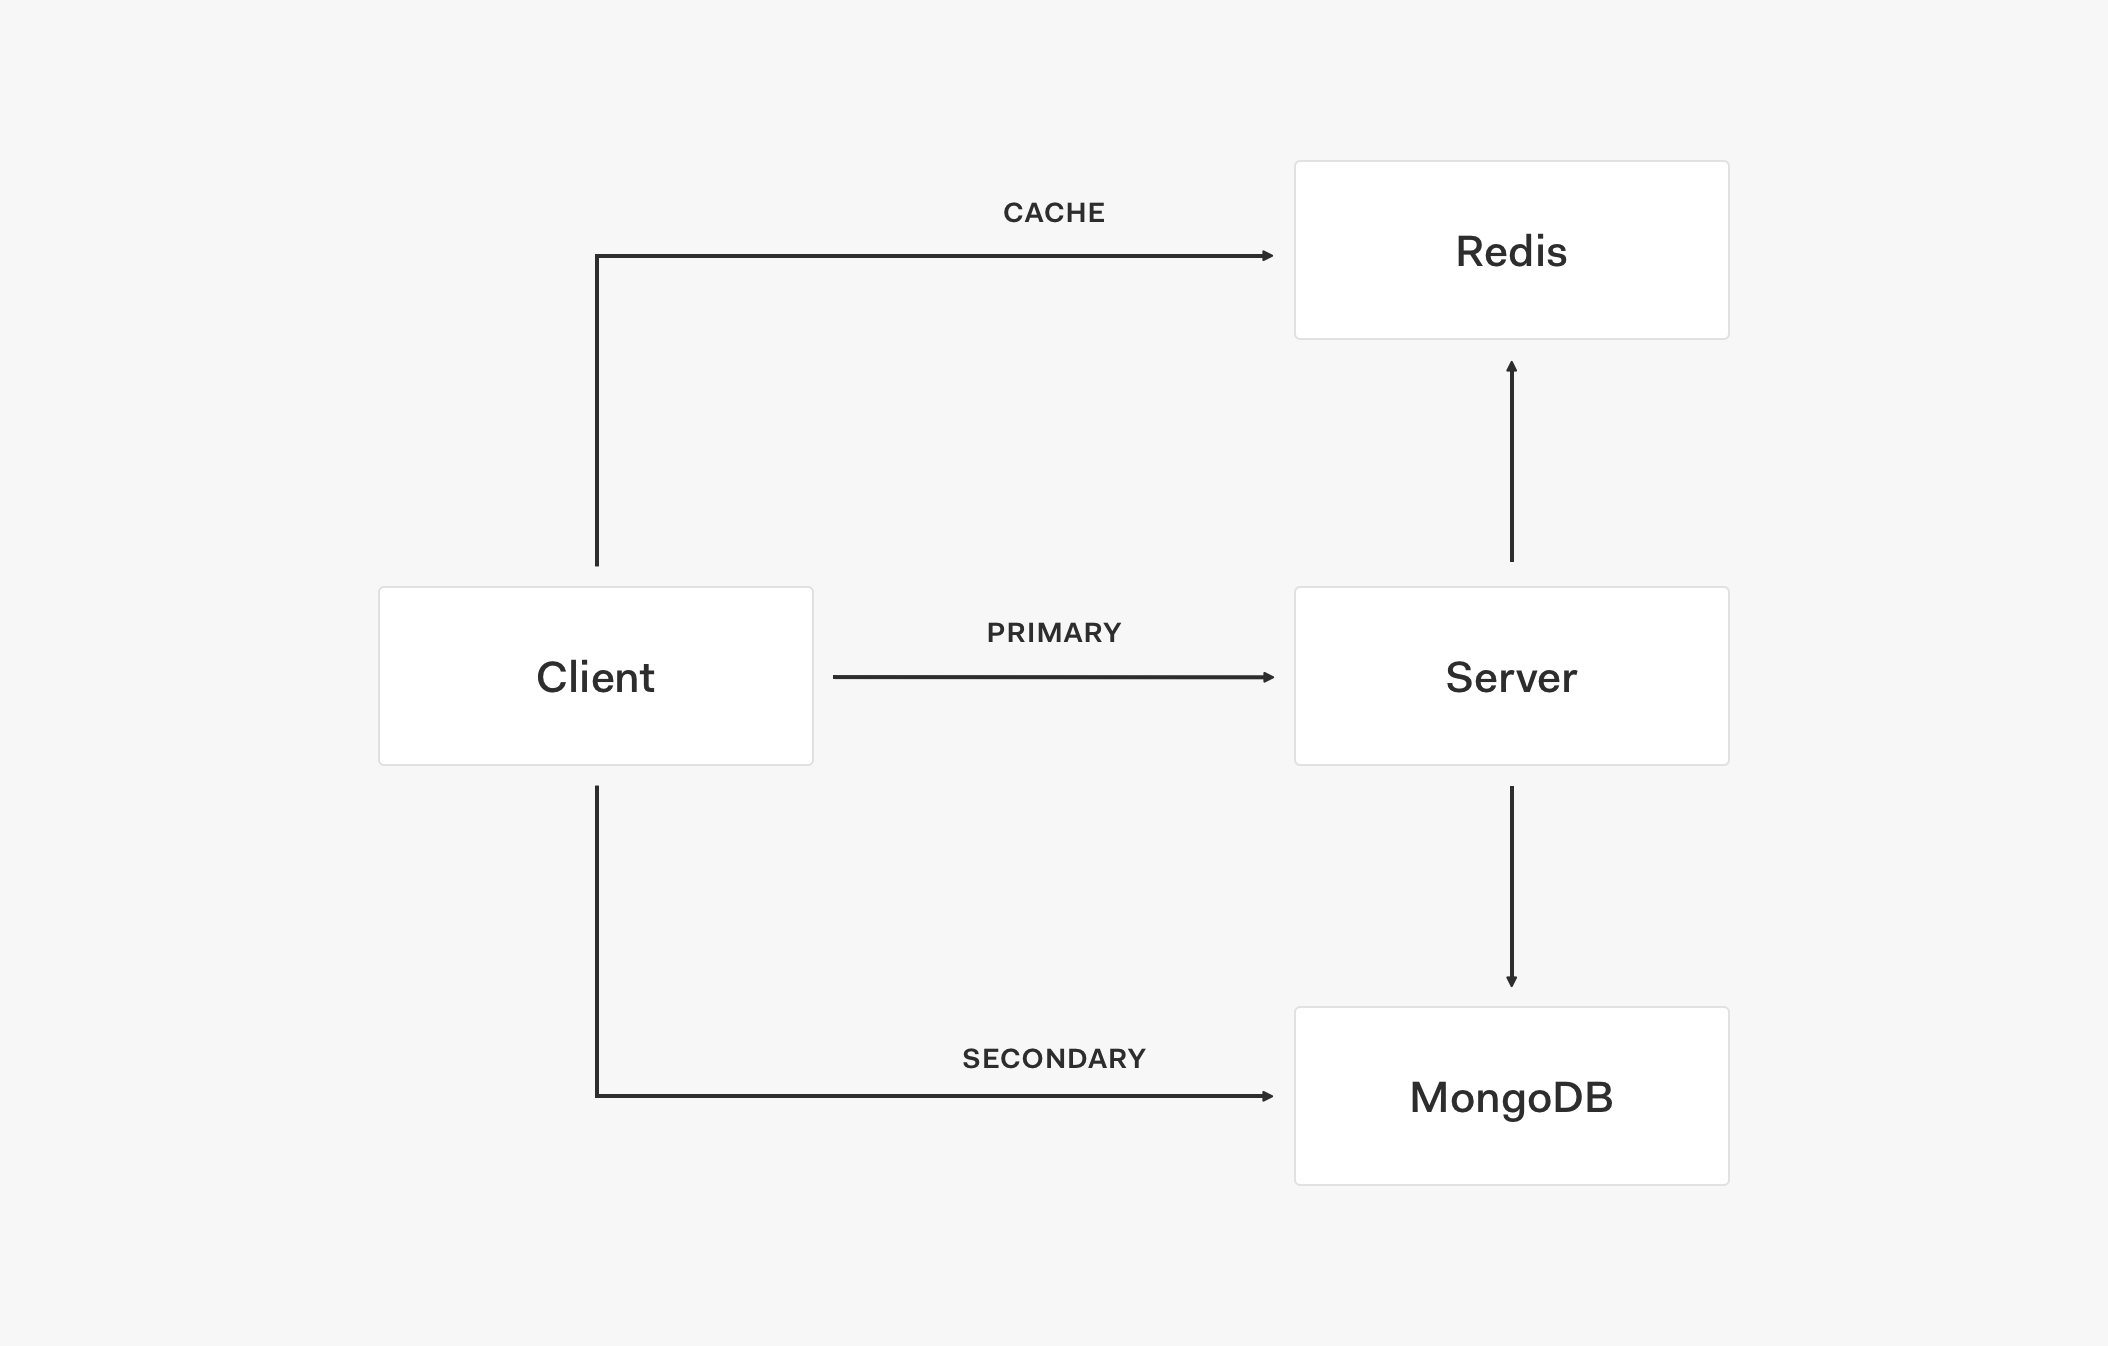 Adding caching to the service architecture